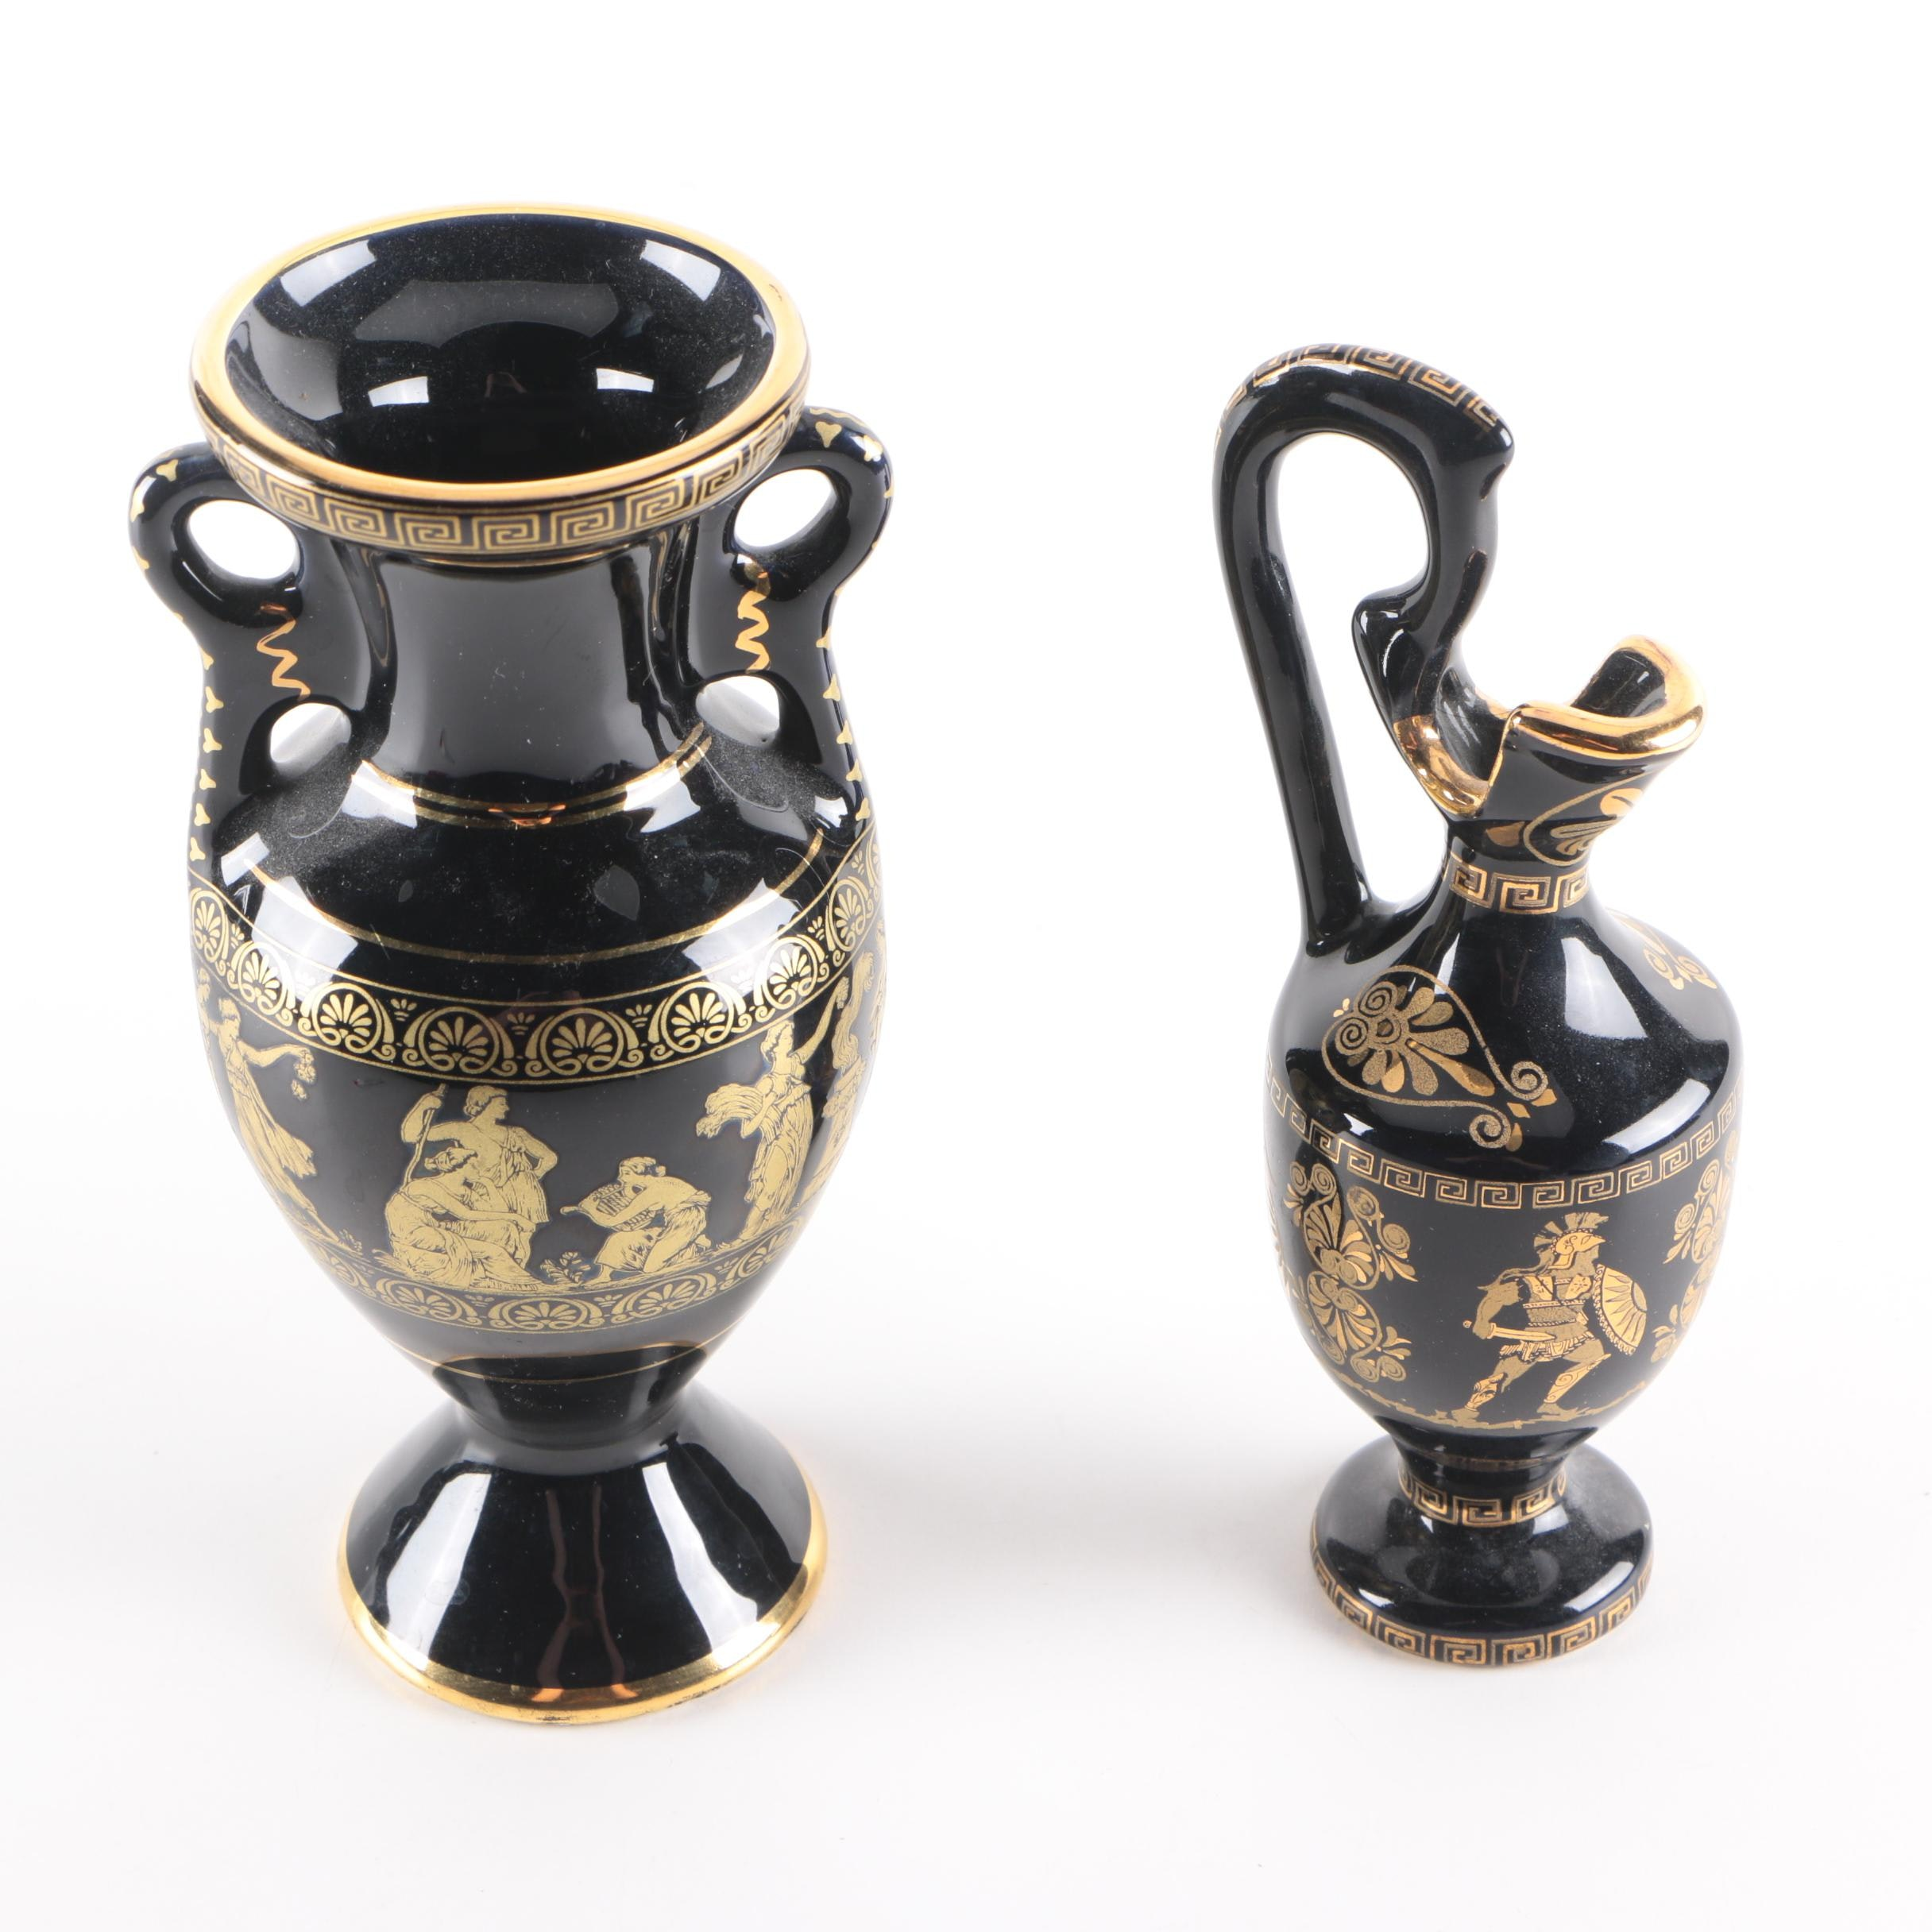 Greek Cruet and Urn with 24K Gold Accents